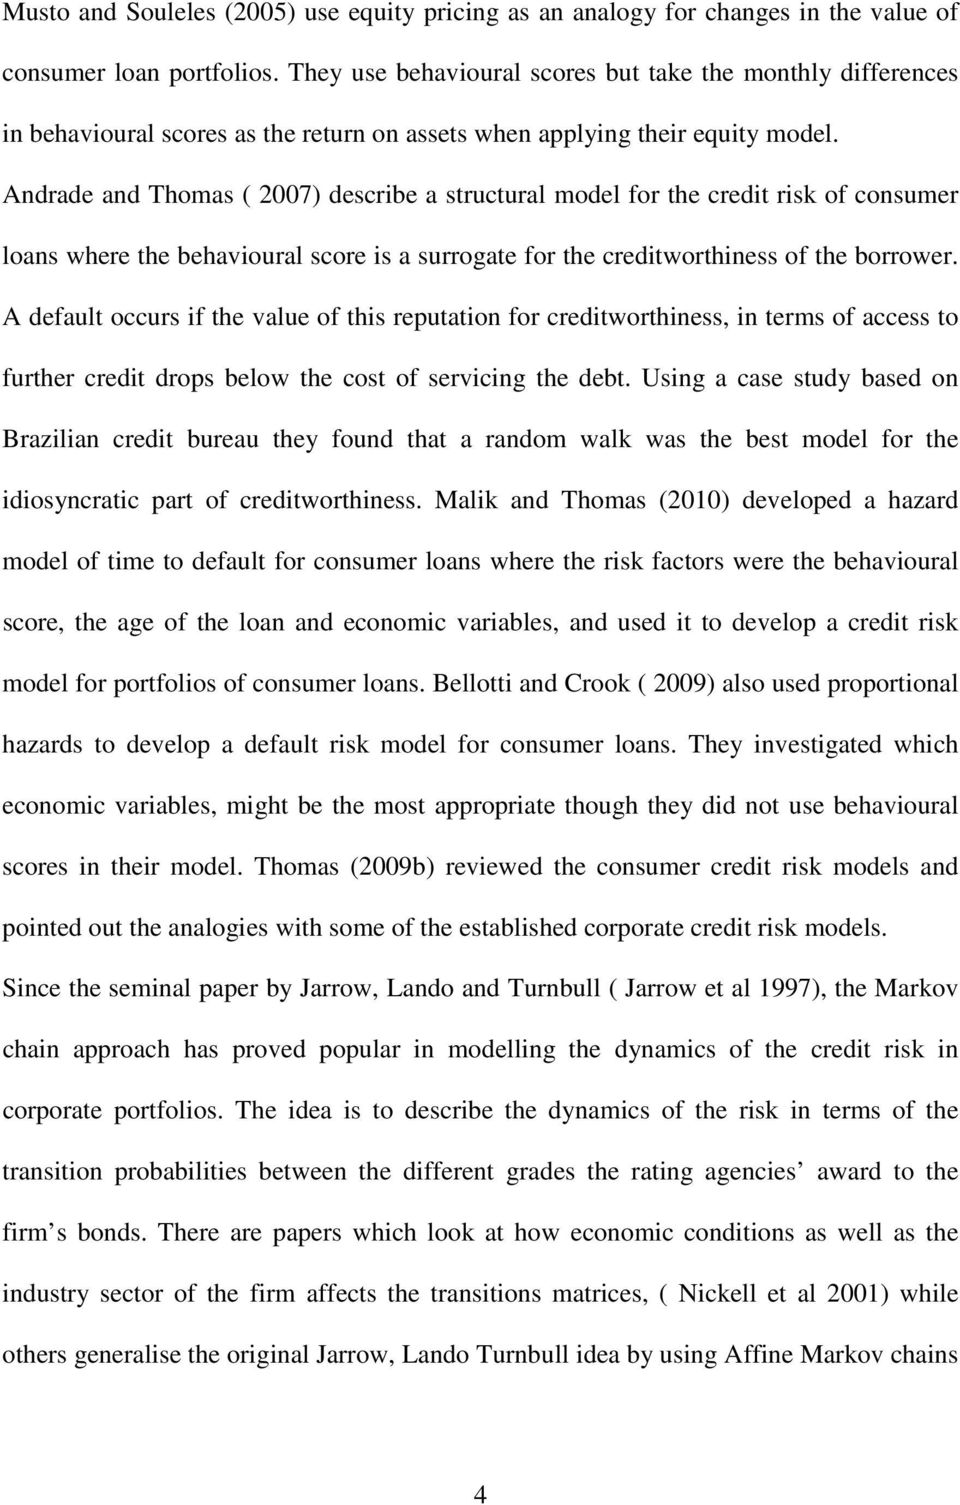 Andrade and Thomas ( 2007) descrbe a structural model for the credt rsk of consumer loans where the behavoural score s a surrogate for the credtworthness of the borrower.